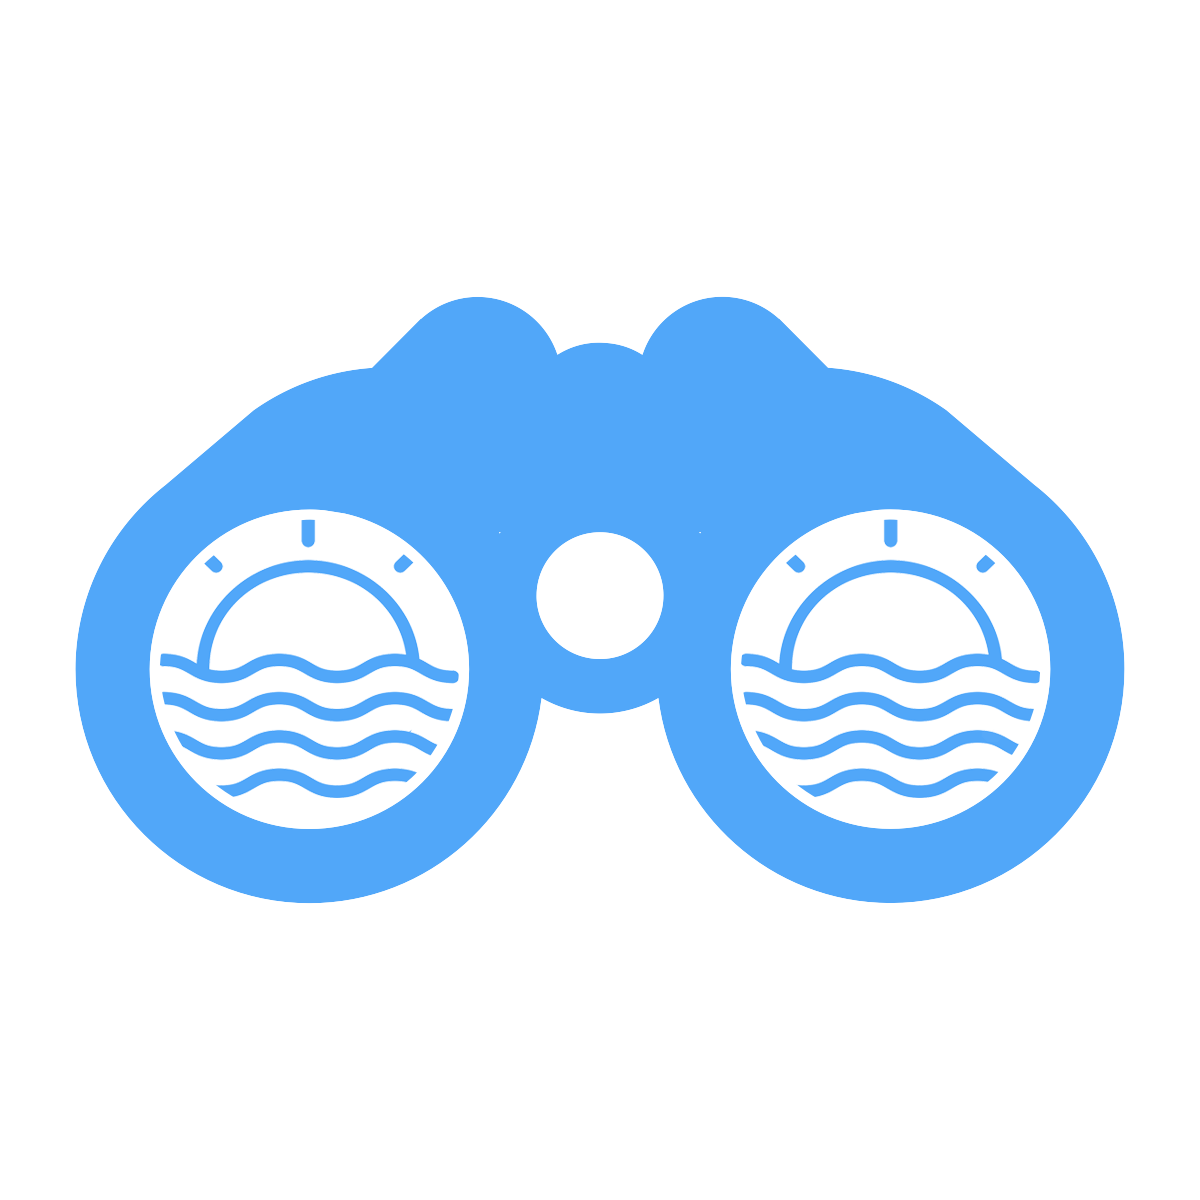 Observations icon - binoculars looking at sun setting behind waves